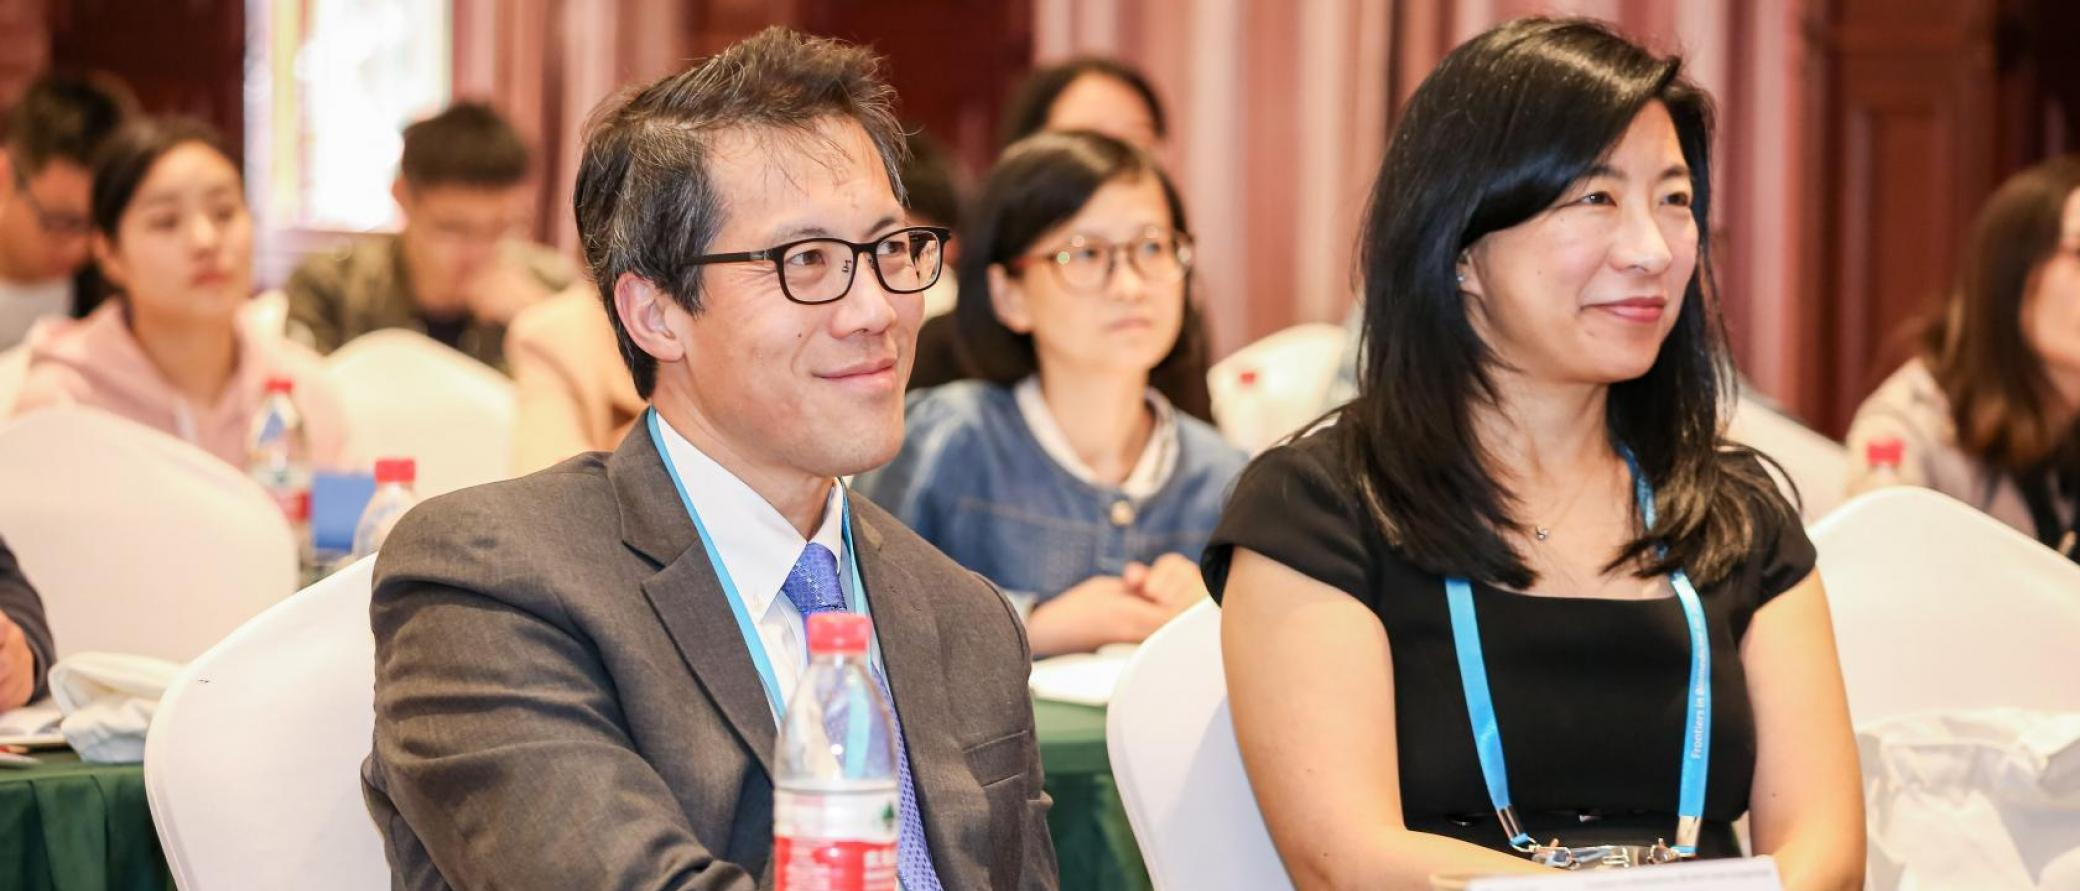 David Wu, MD, and his wife, Bernadine Wu, MD, representing the Wu family, joined the 2019 symposium.